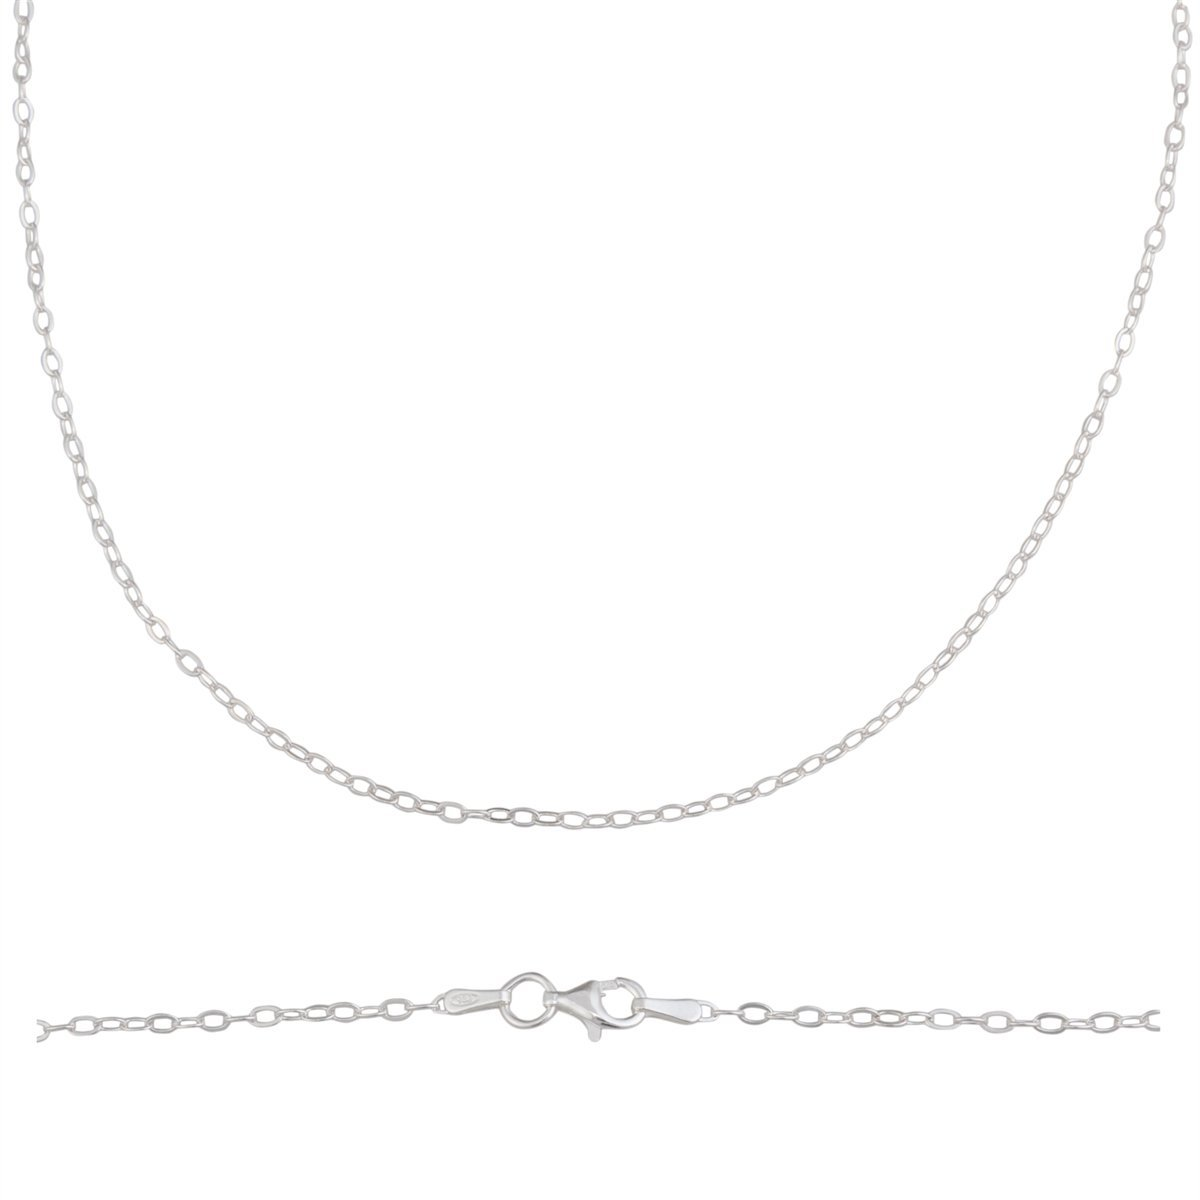 Sterling Silver Thin Drop Oval Link Chain | Charles Albert Jewelry